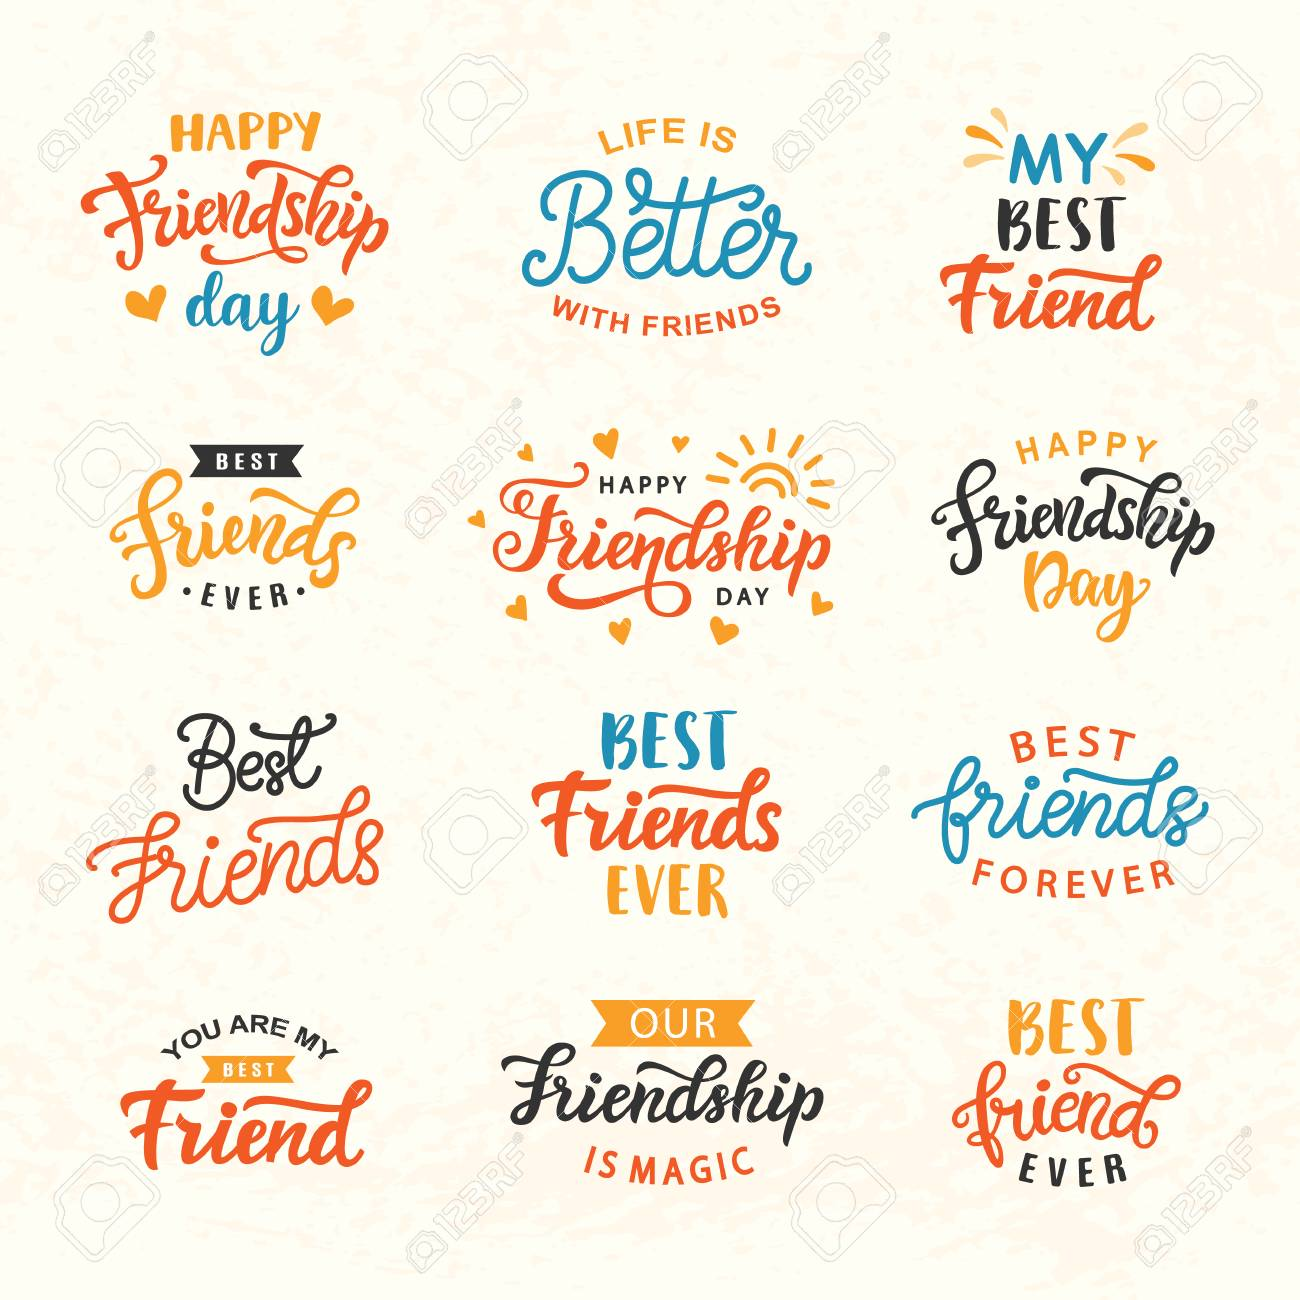 2a9b92623 Happy Friendship Day hand lettering big set. Greeting card typography  template. Modern calligraphy design